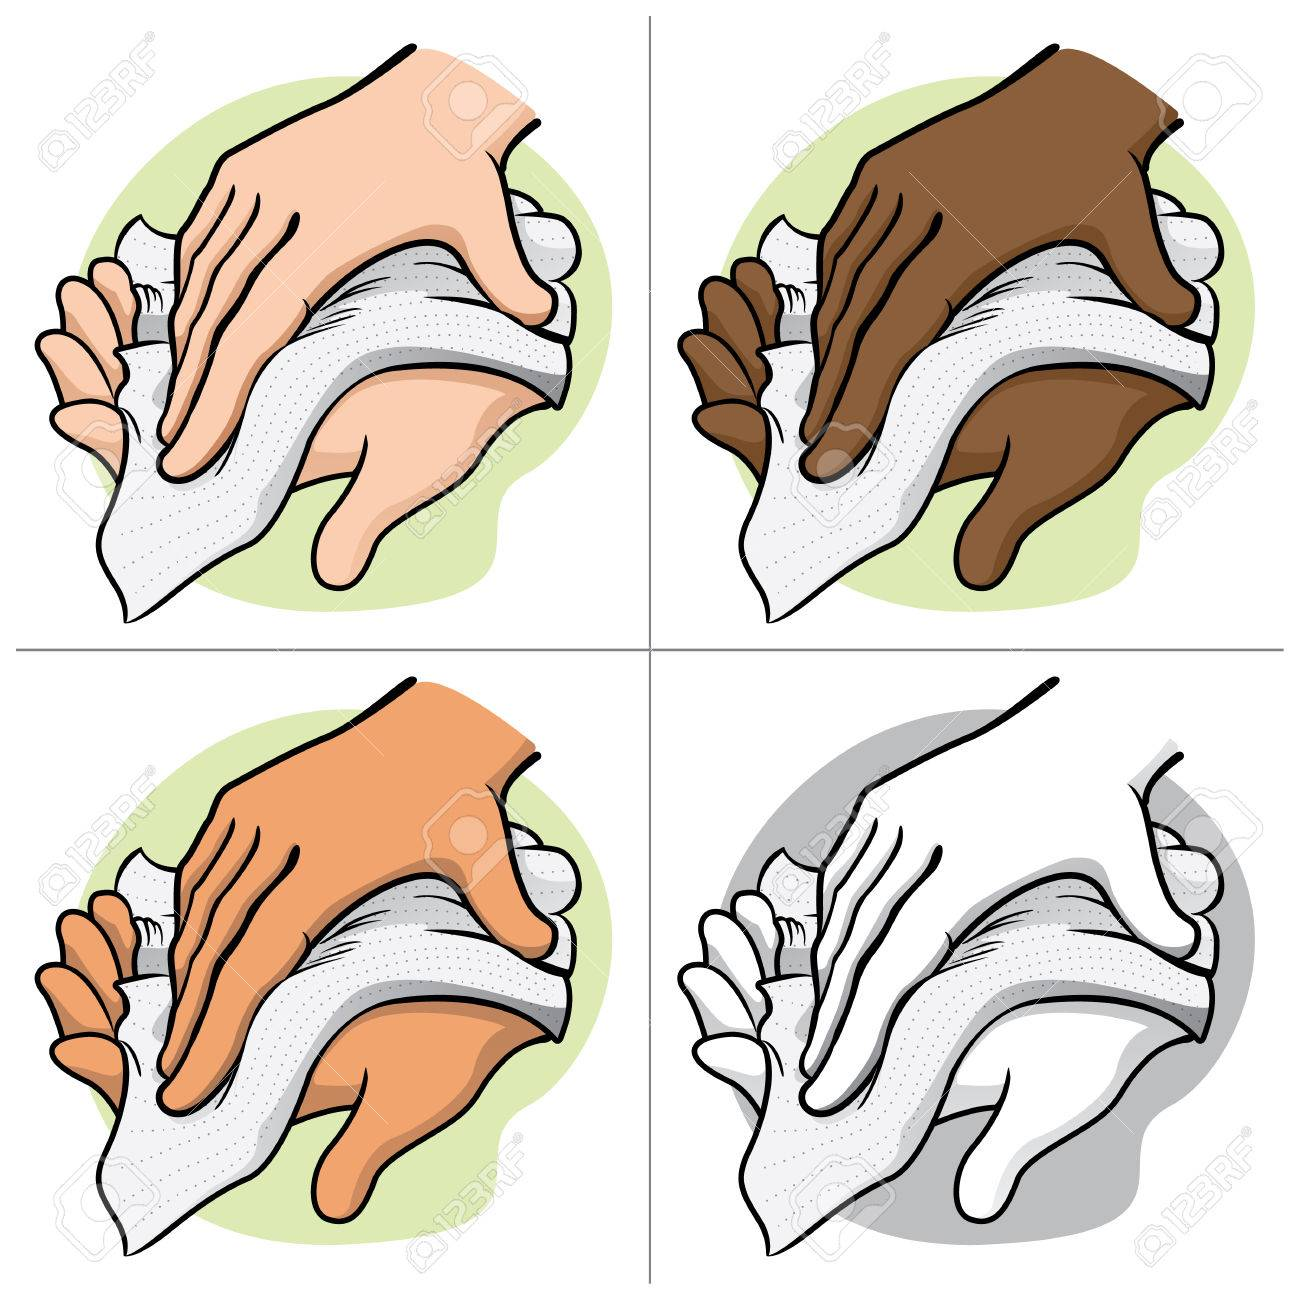 Illustration of a person wiping and wiping his hands with a paper...